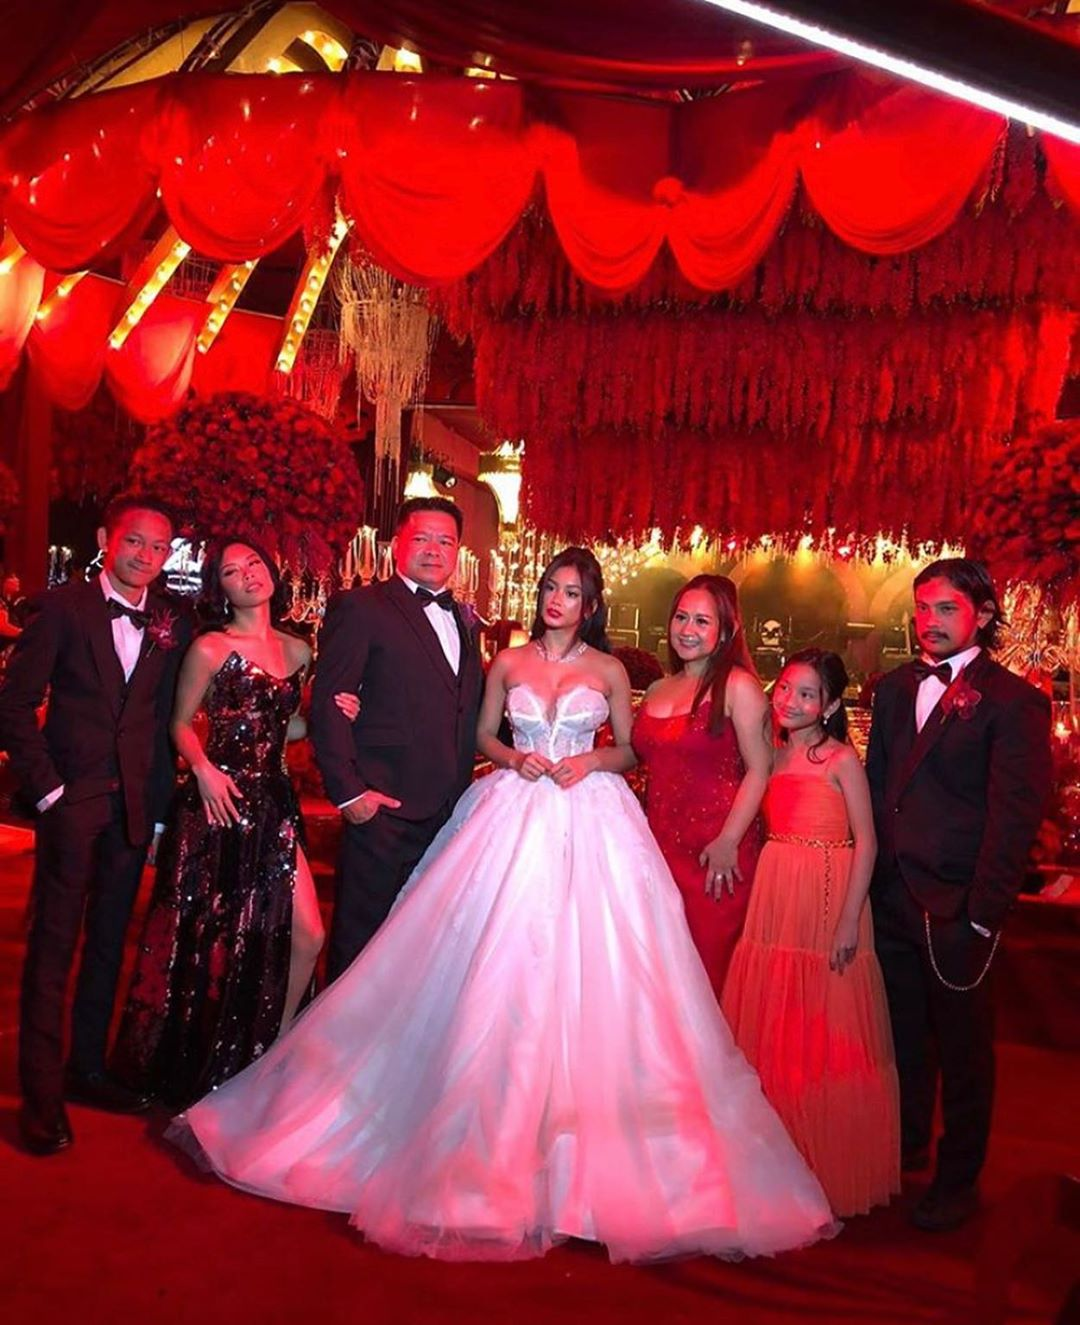 Ylona's family were all in attendance during her 18th birthday party.